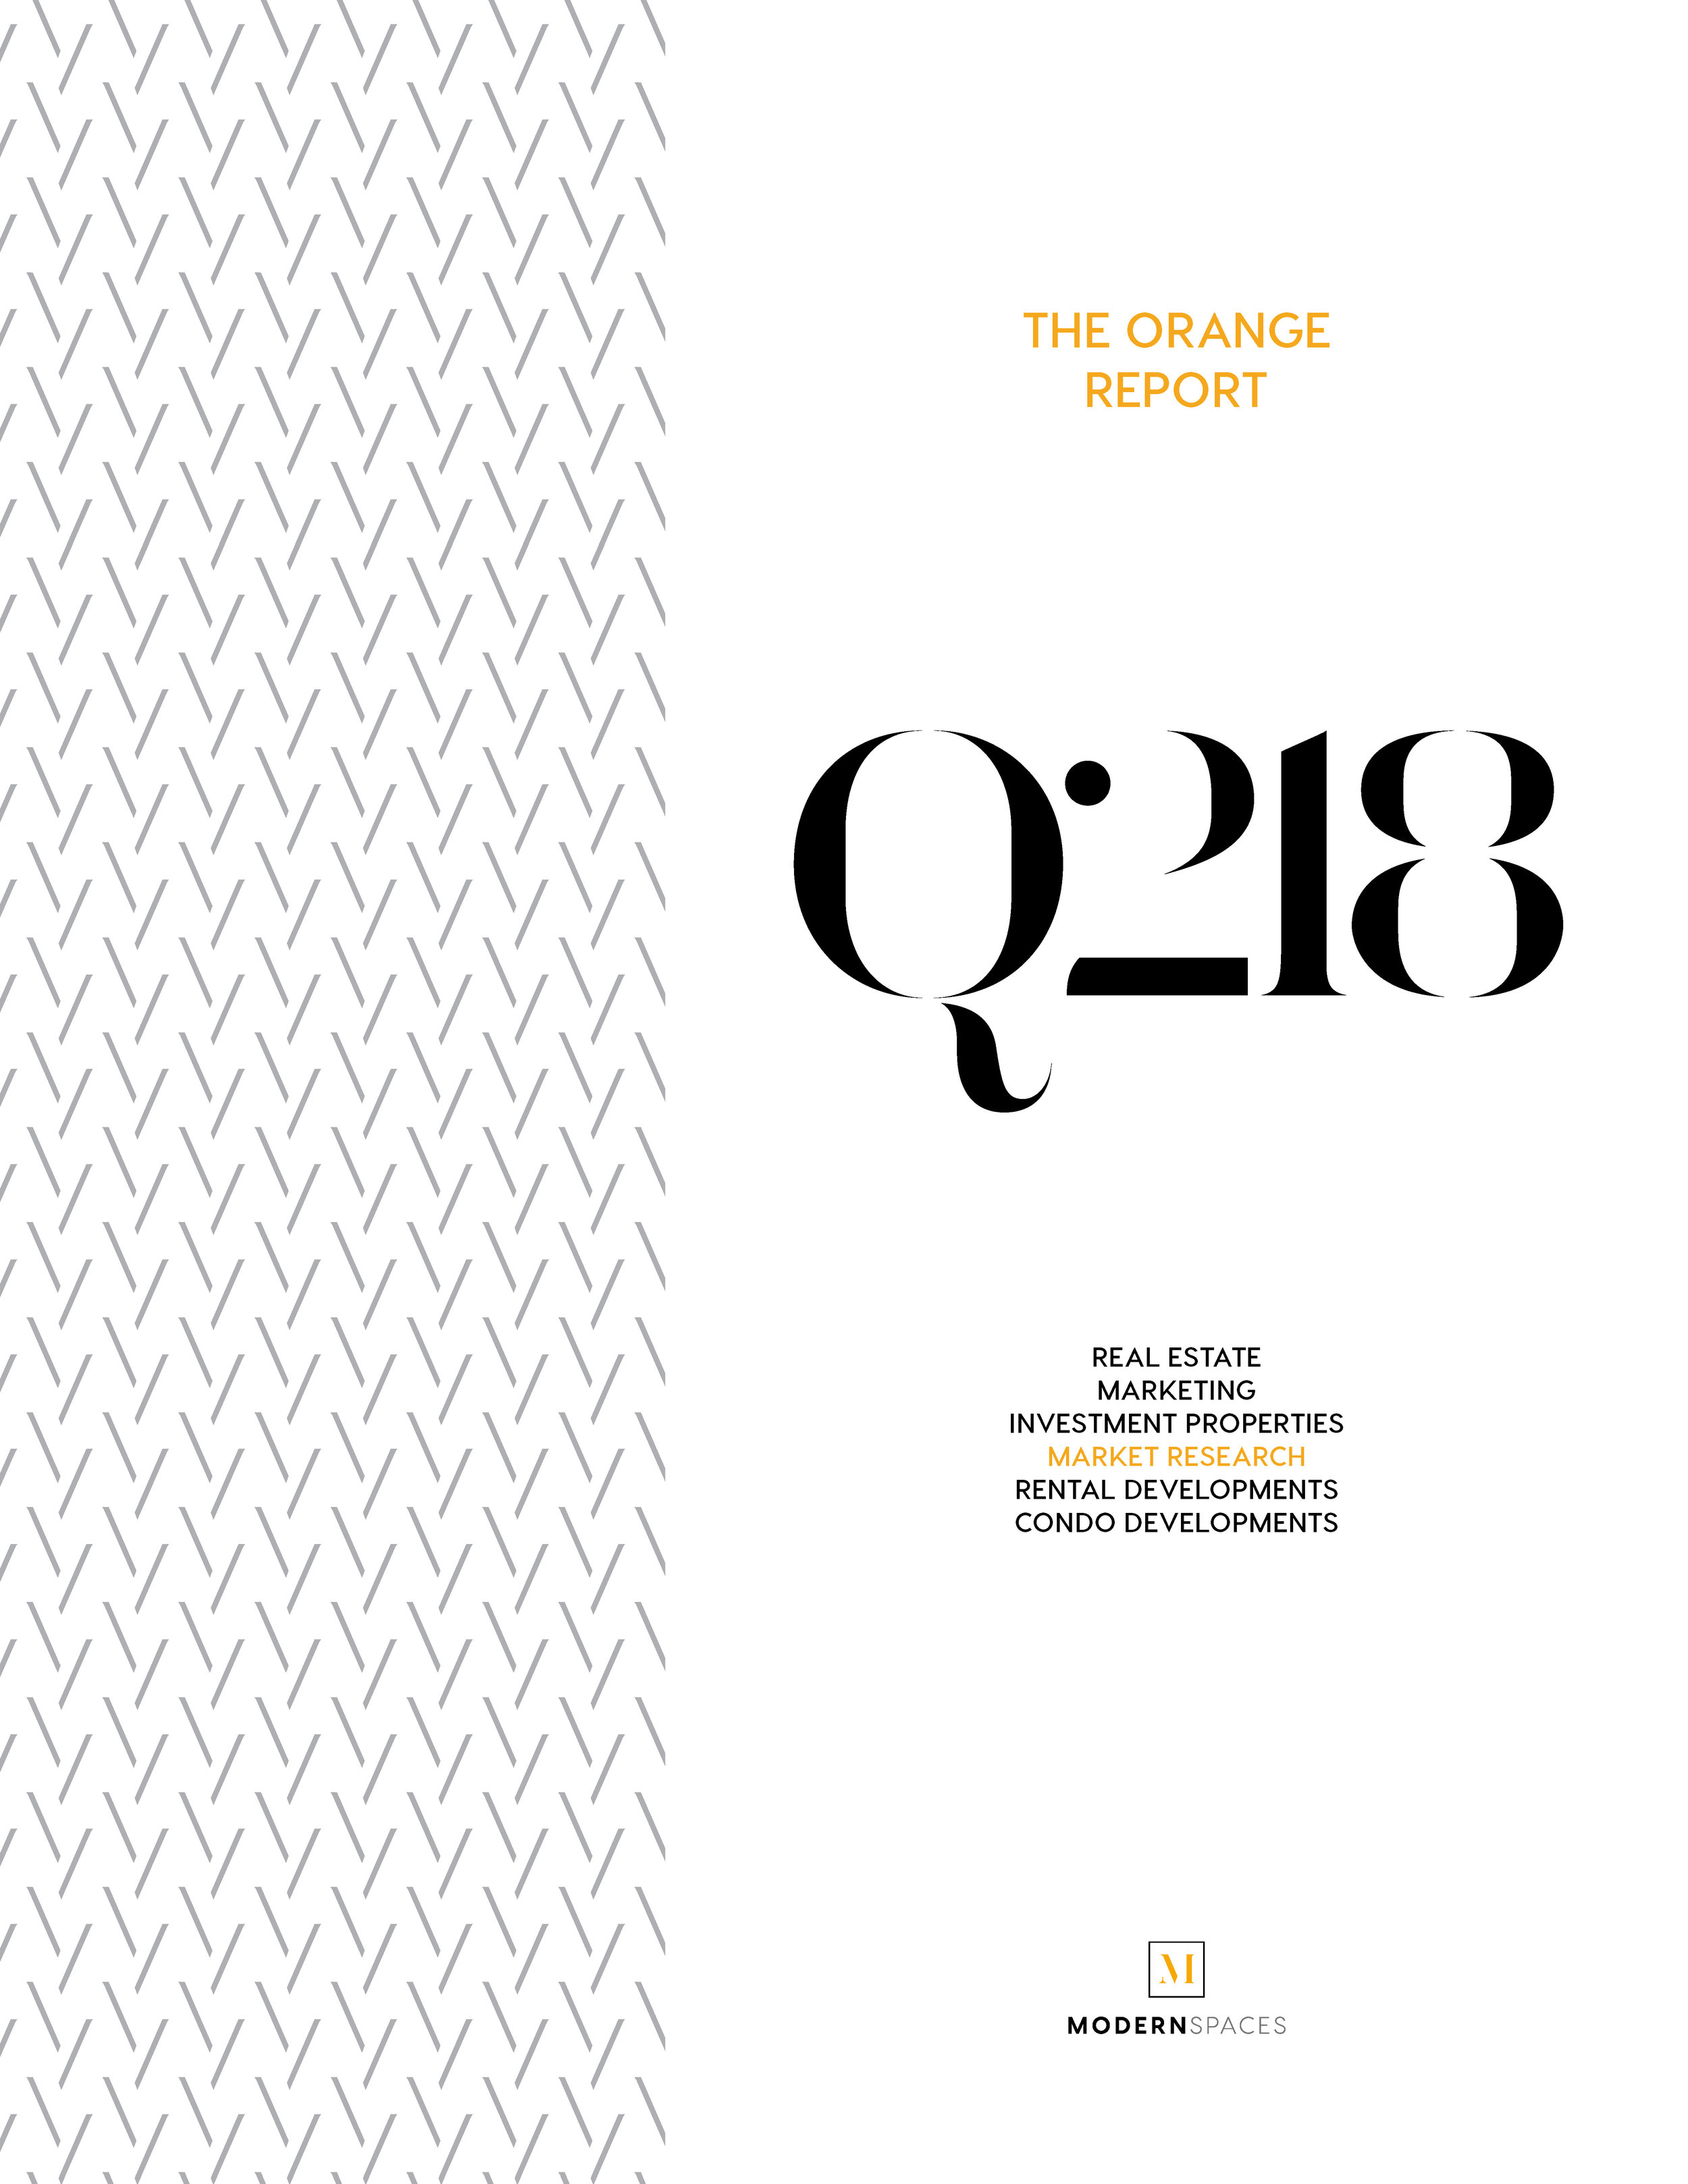 Q2-2018 Market Report 7-9 cover_Page_01.jpg